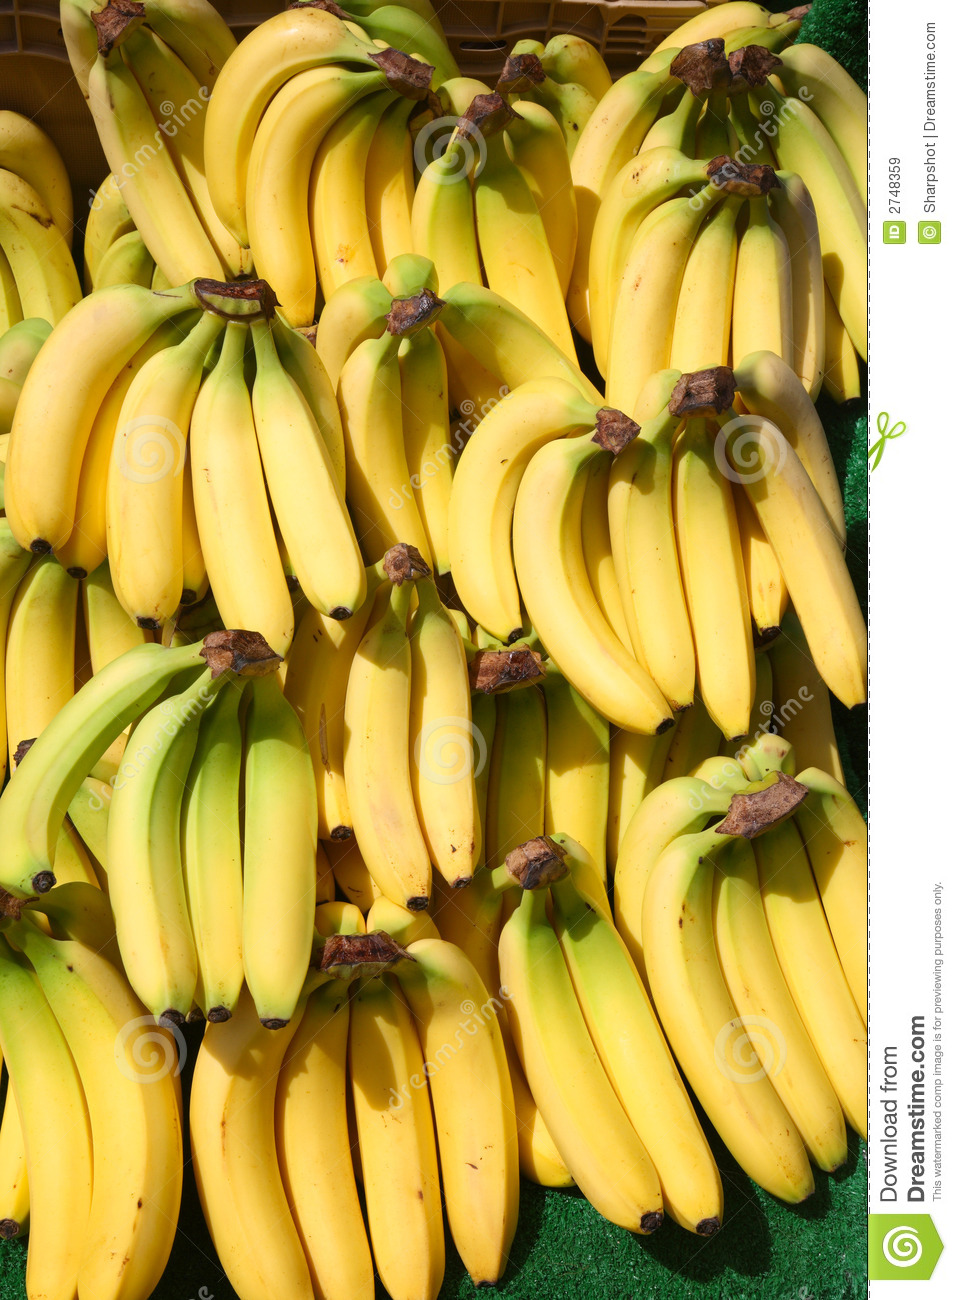 Lots Of Bunches Of Bananas Outside A Greengrocer Shop